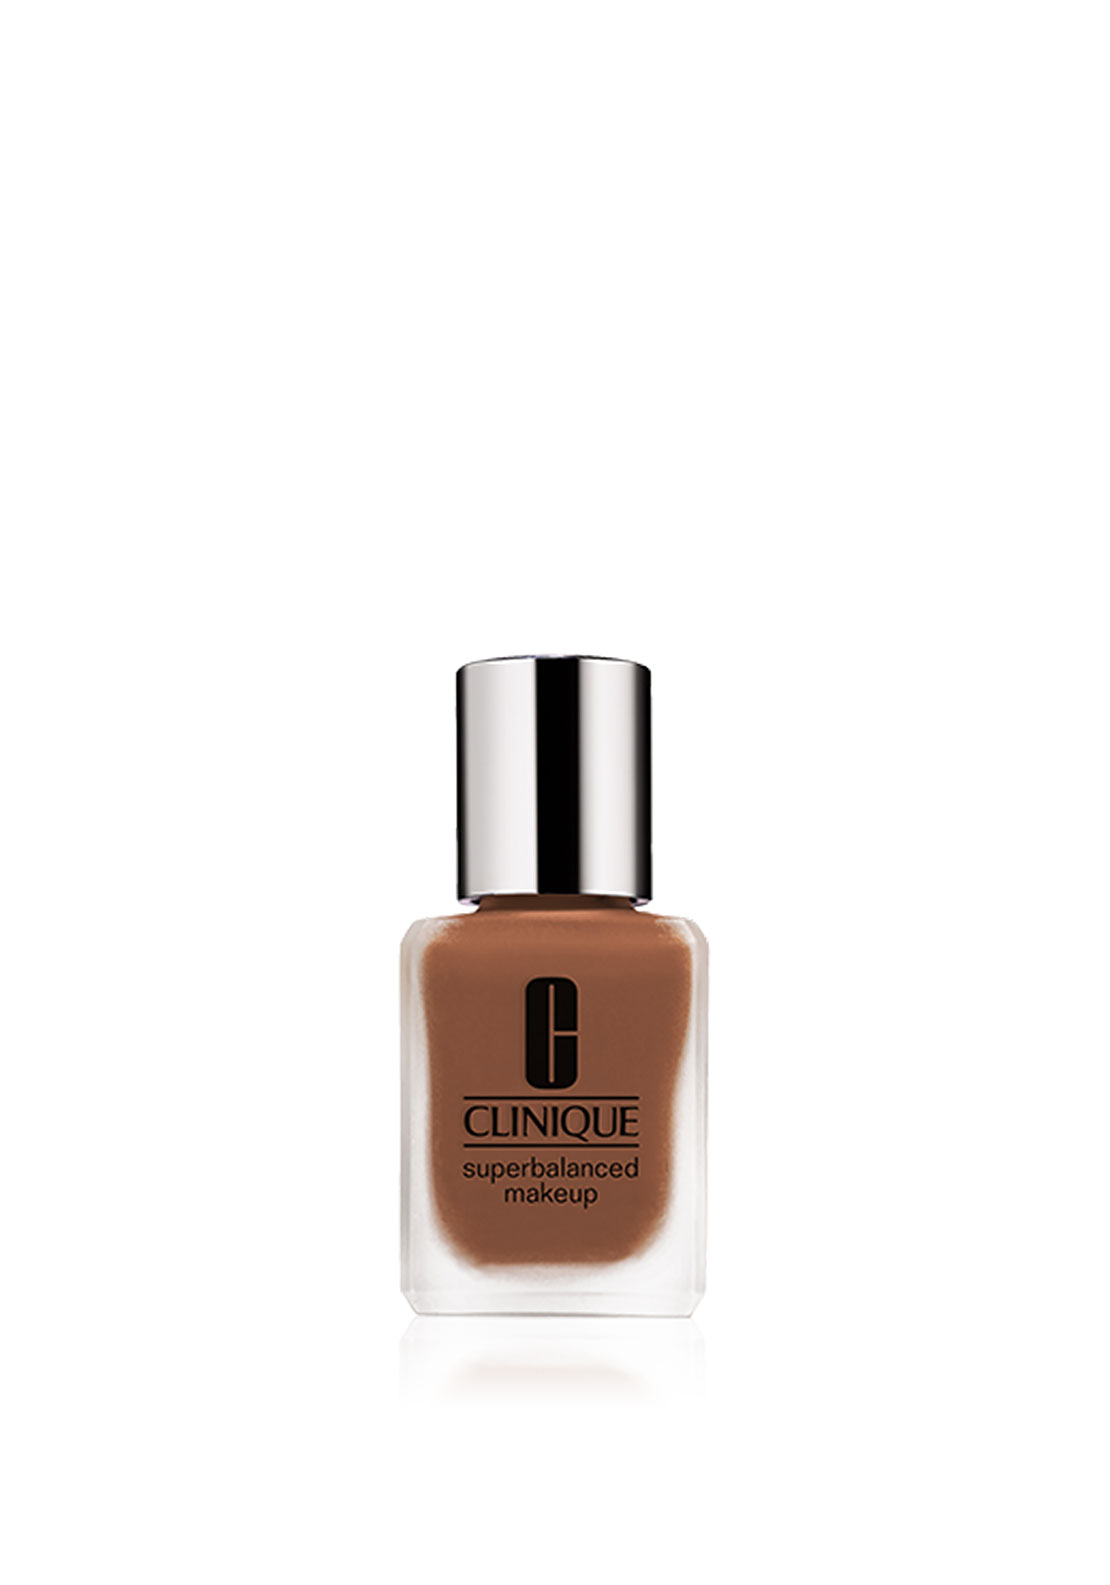 Clinique Superbalanced Make Up Foundation, Clove